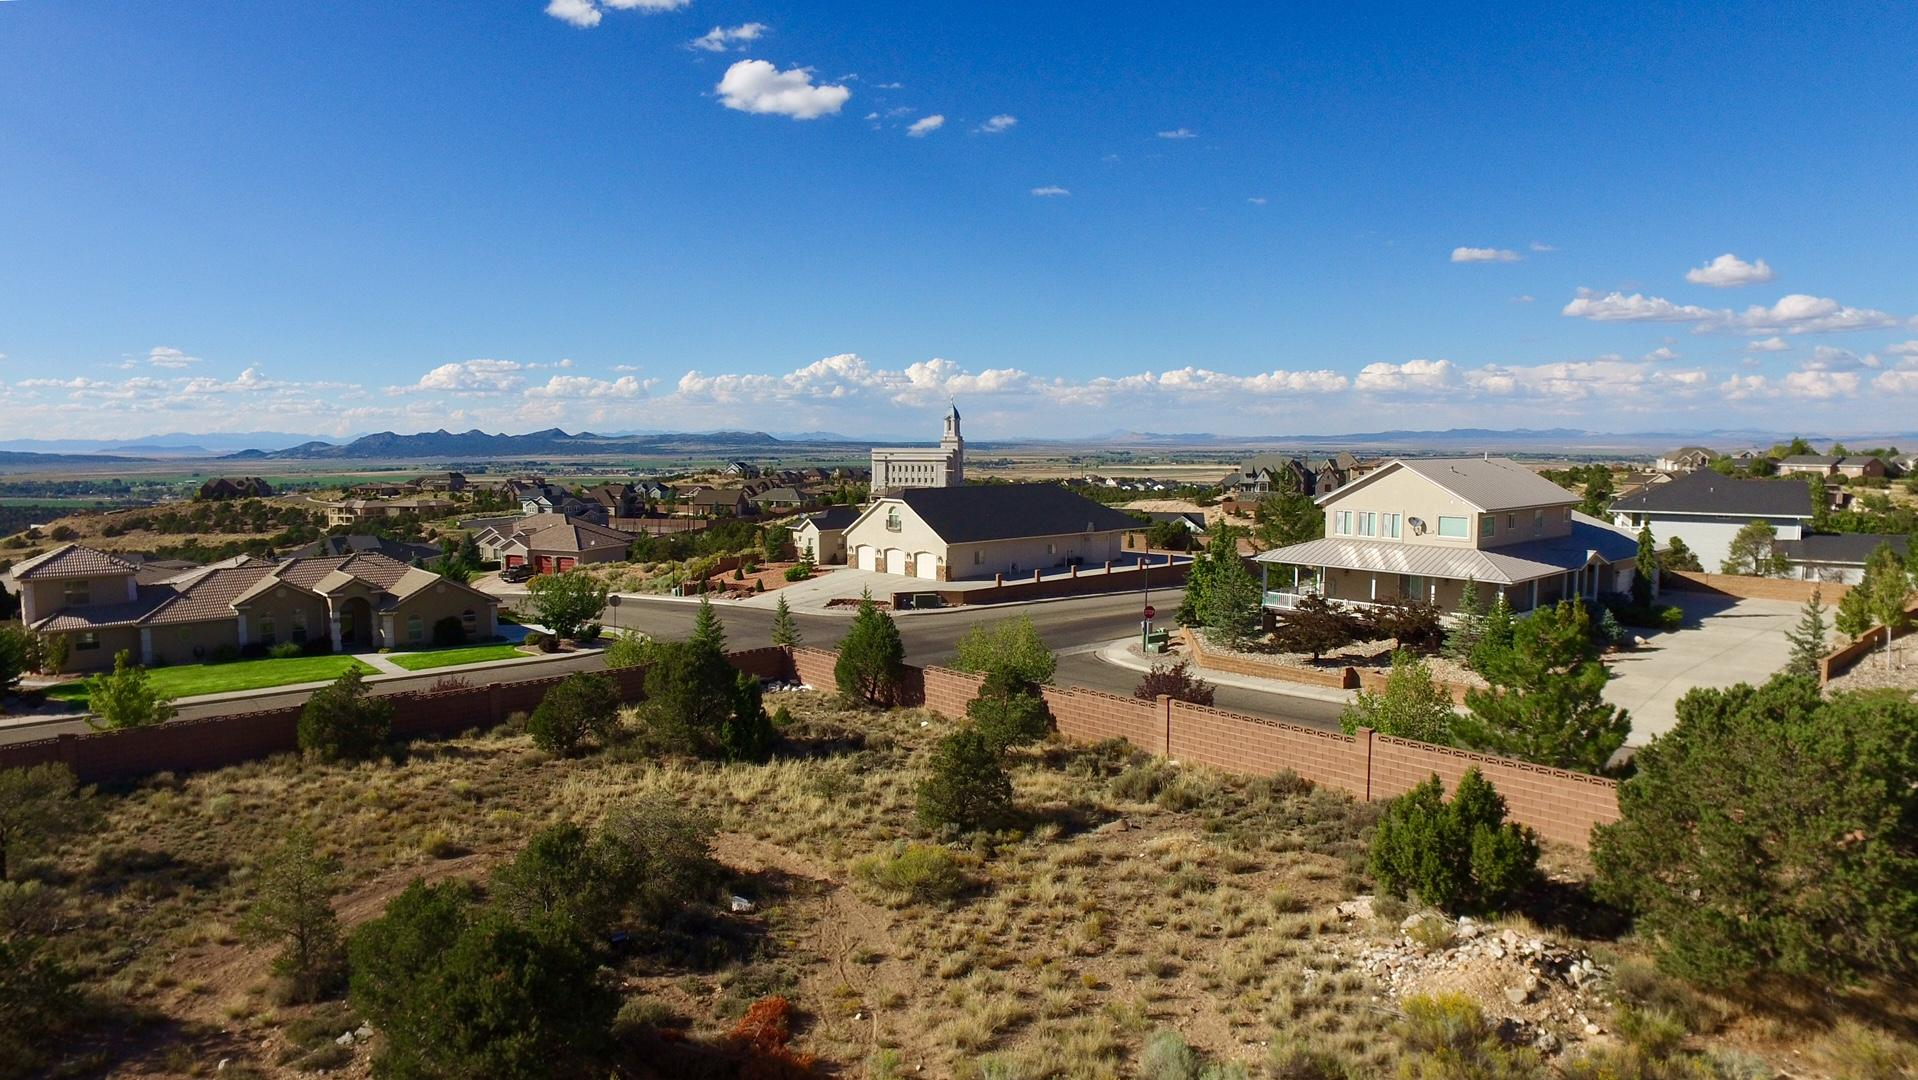 Amazing opportunity to live in an exclusive, gated, million dollar community for minimal cost.  This is a flat lot, is ready to build on and is located blocks from the new Cedar City Temple.  With a two story home you will have a perfect view.  Block walls surrounding the property are also in place (huge cost savings). Build your dream home or a spec home for resale.  Owner/Agent